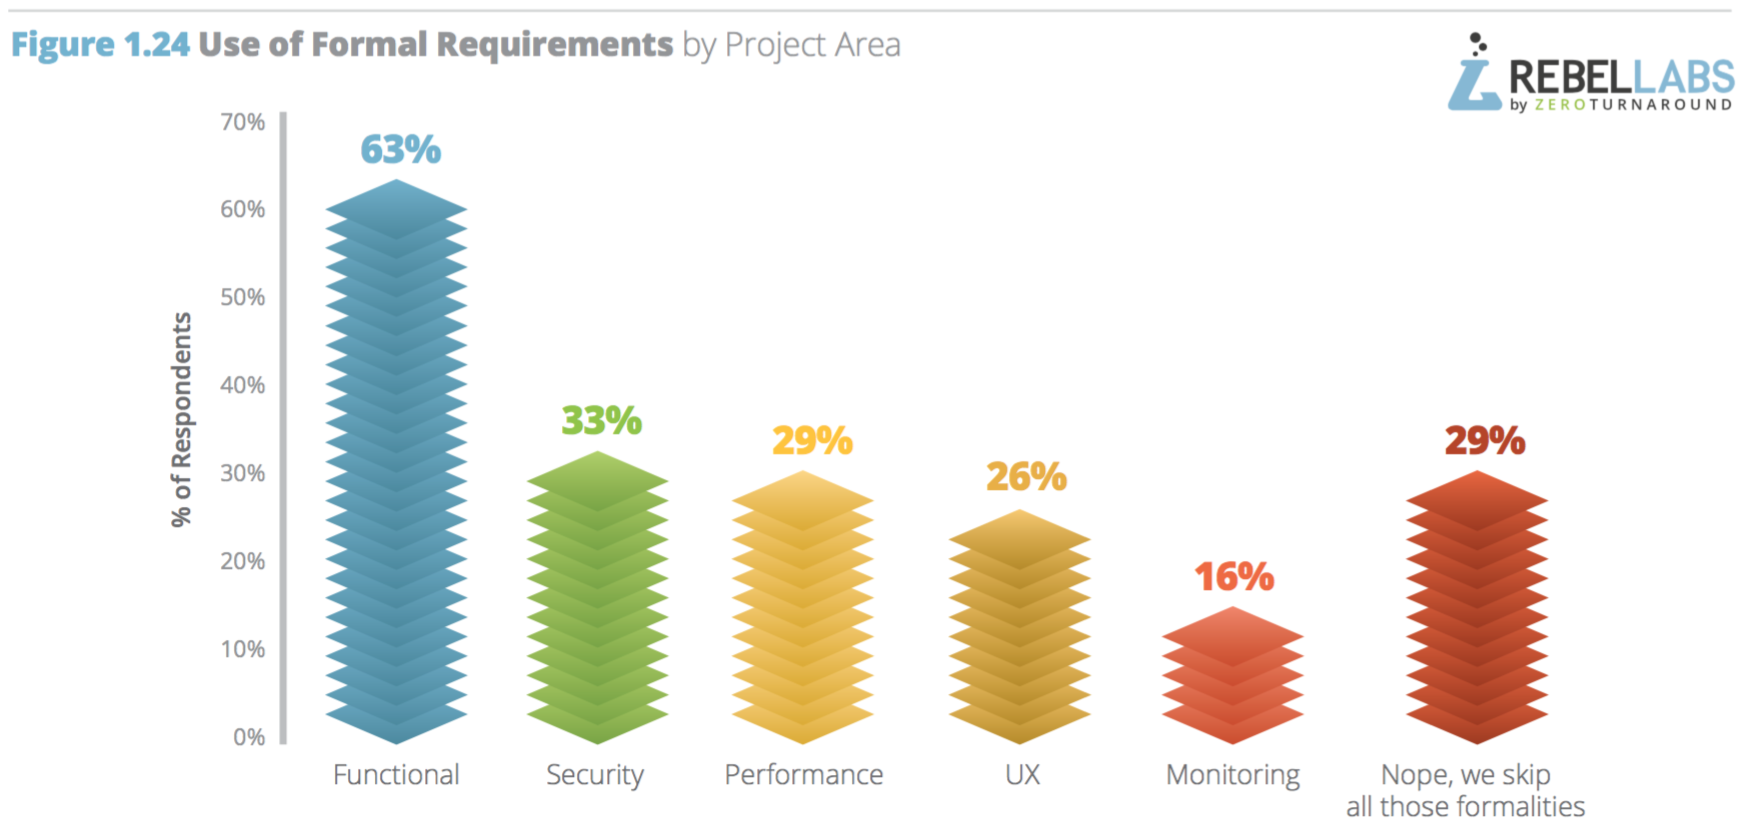 chart showing use of formal requirements by project area